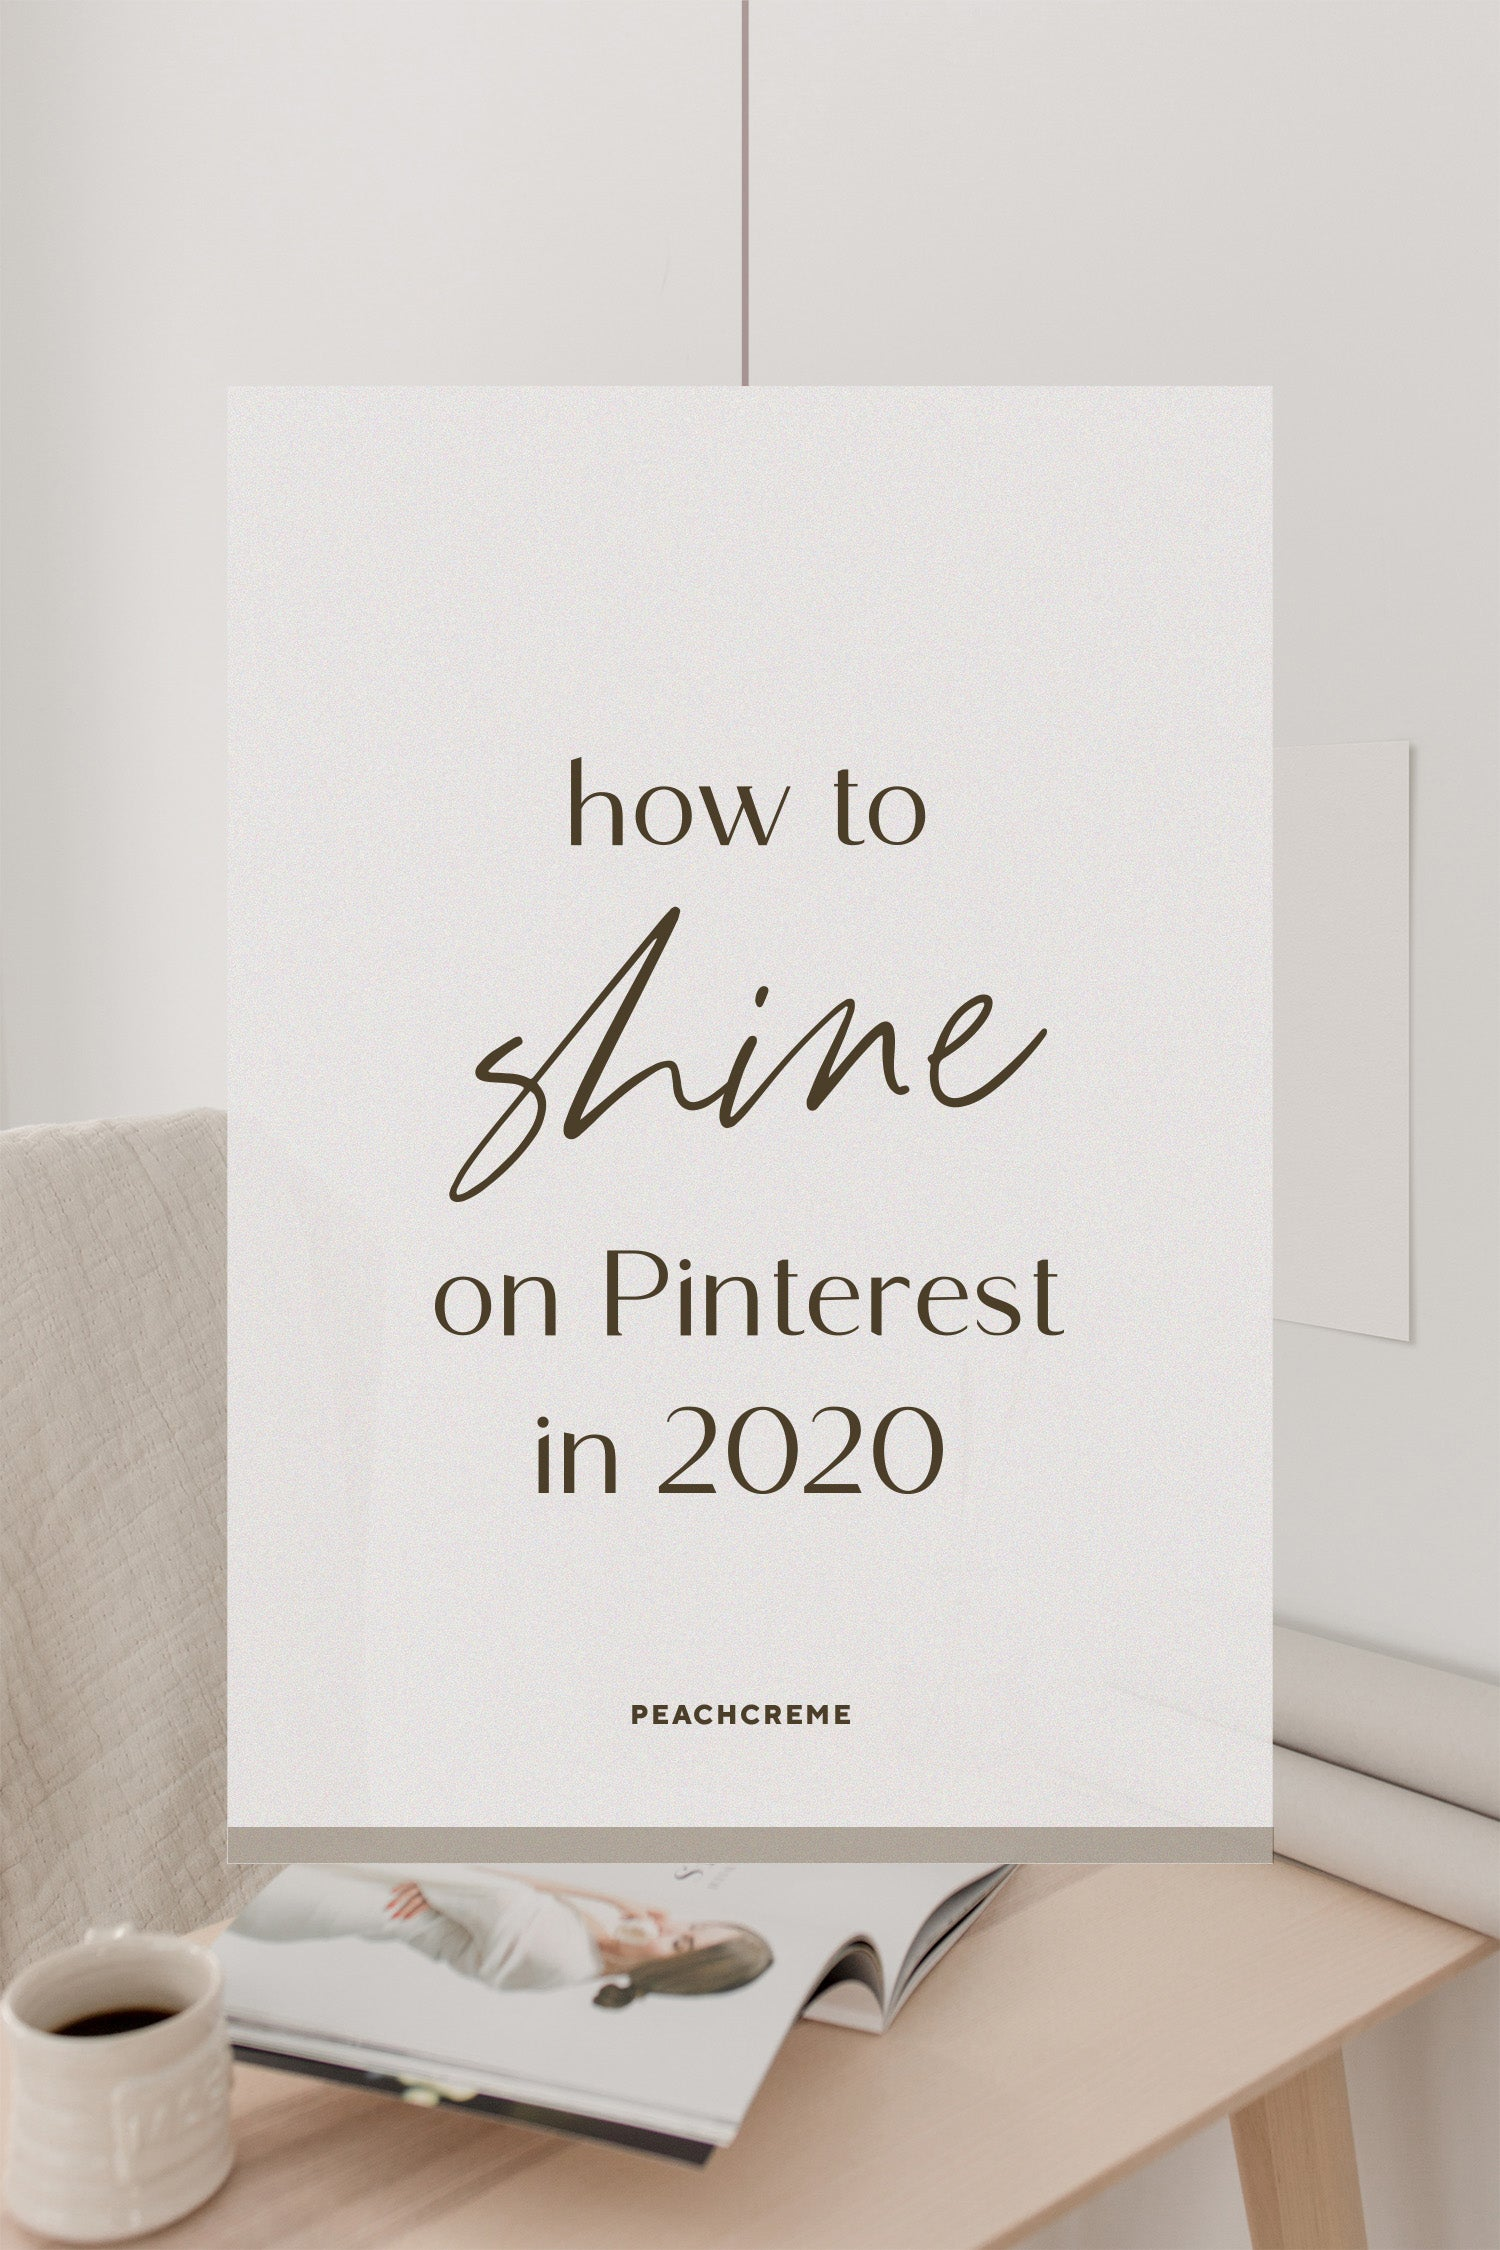 pinterest tips in 2020